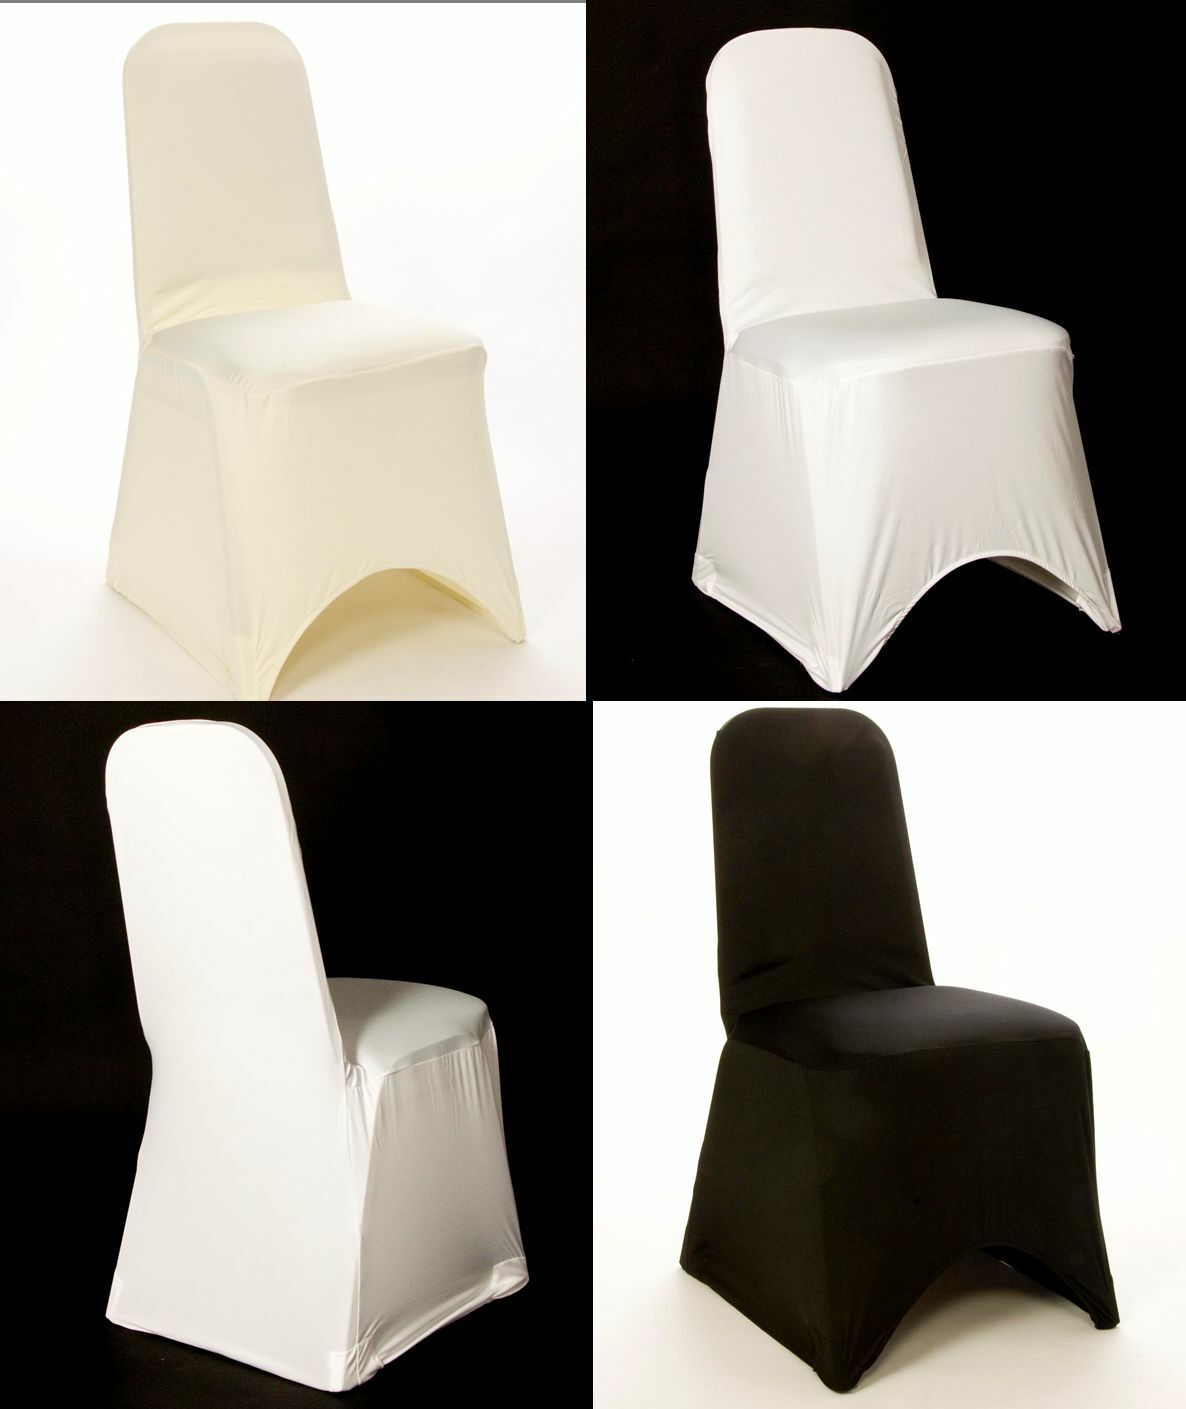 100 Chancellerie-Chaise Spandex Chair Covers BRAND NEW UK